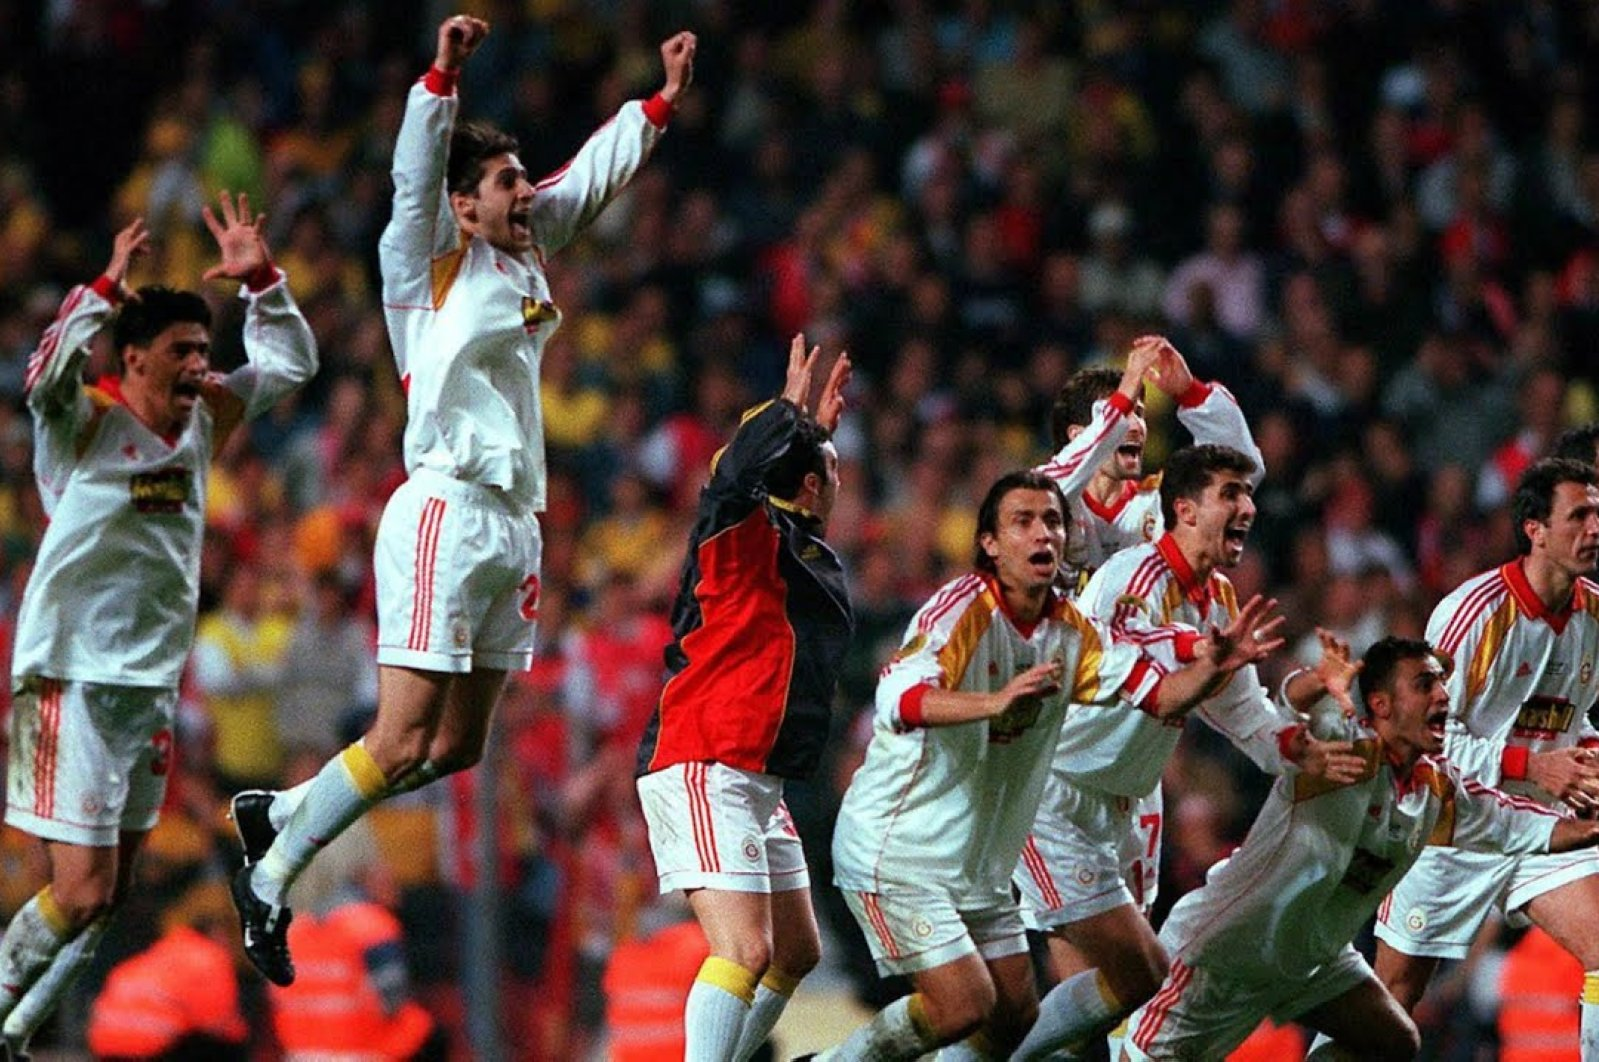 Galatasaray footballers cheer during the penalty shoot-out in Copenhagen's Parken Stadium, May 17, 2000. (File Photo)